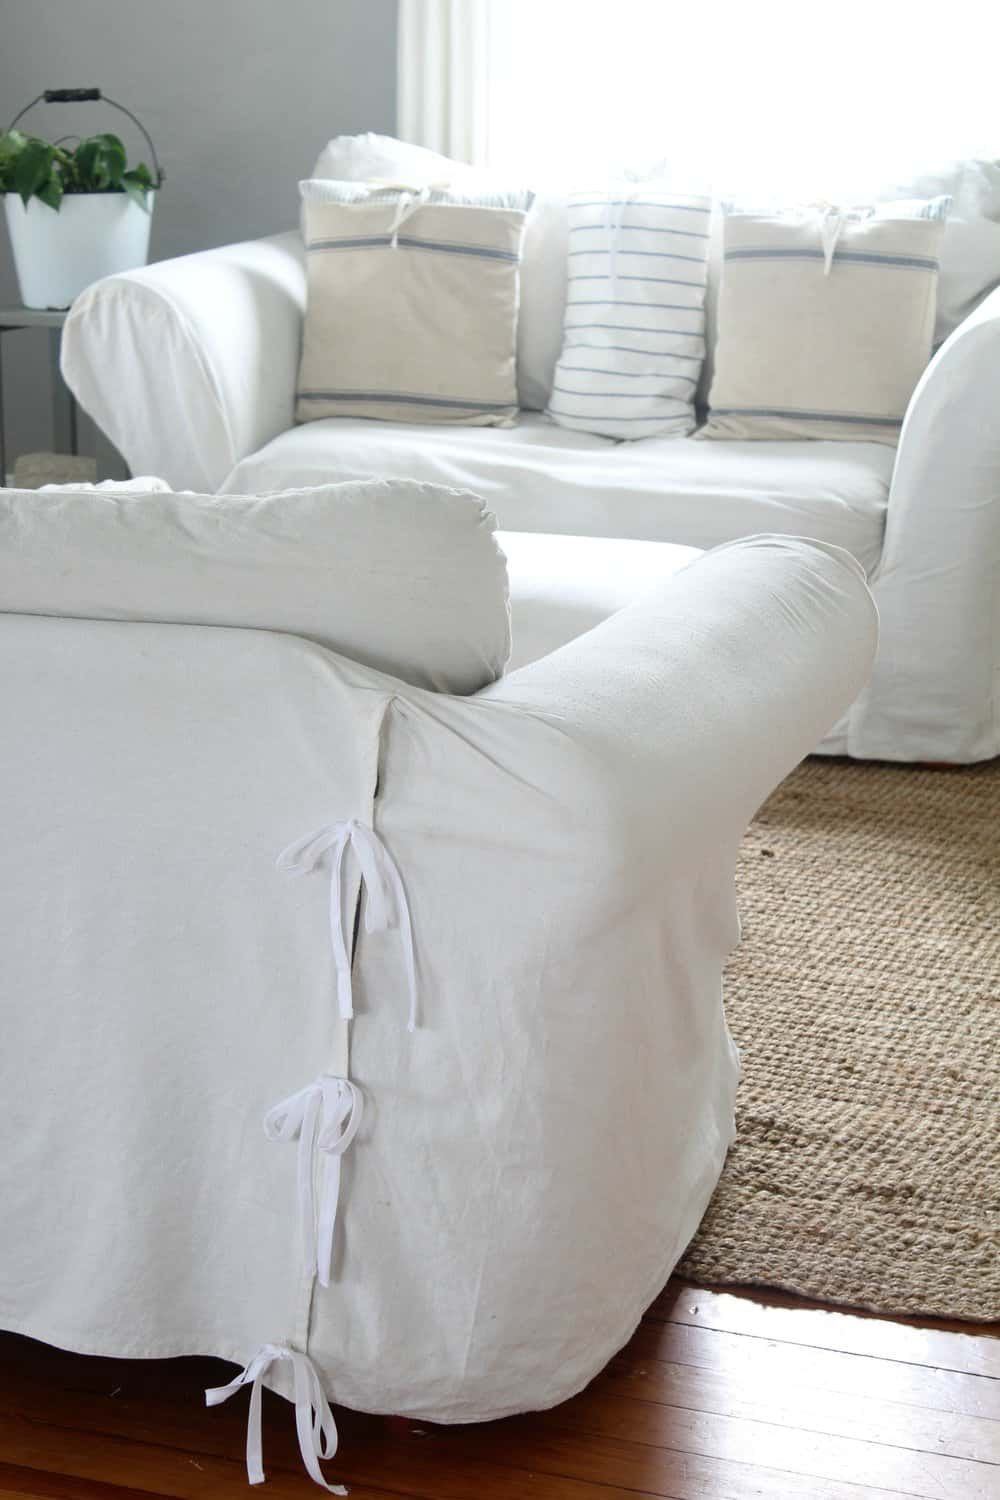 how to make a slipcover for sofa high end beds bleach drop cloth it perfectly soft and white our couches are super ugly they green ripped old cost 80 the pair true story but can you tell